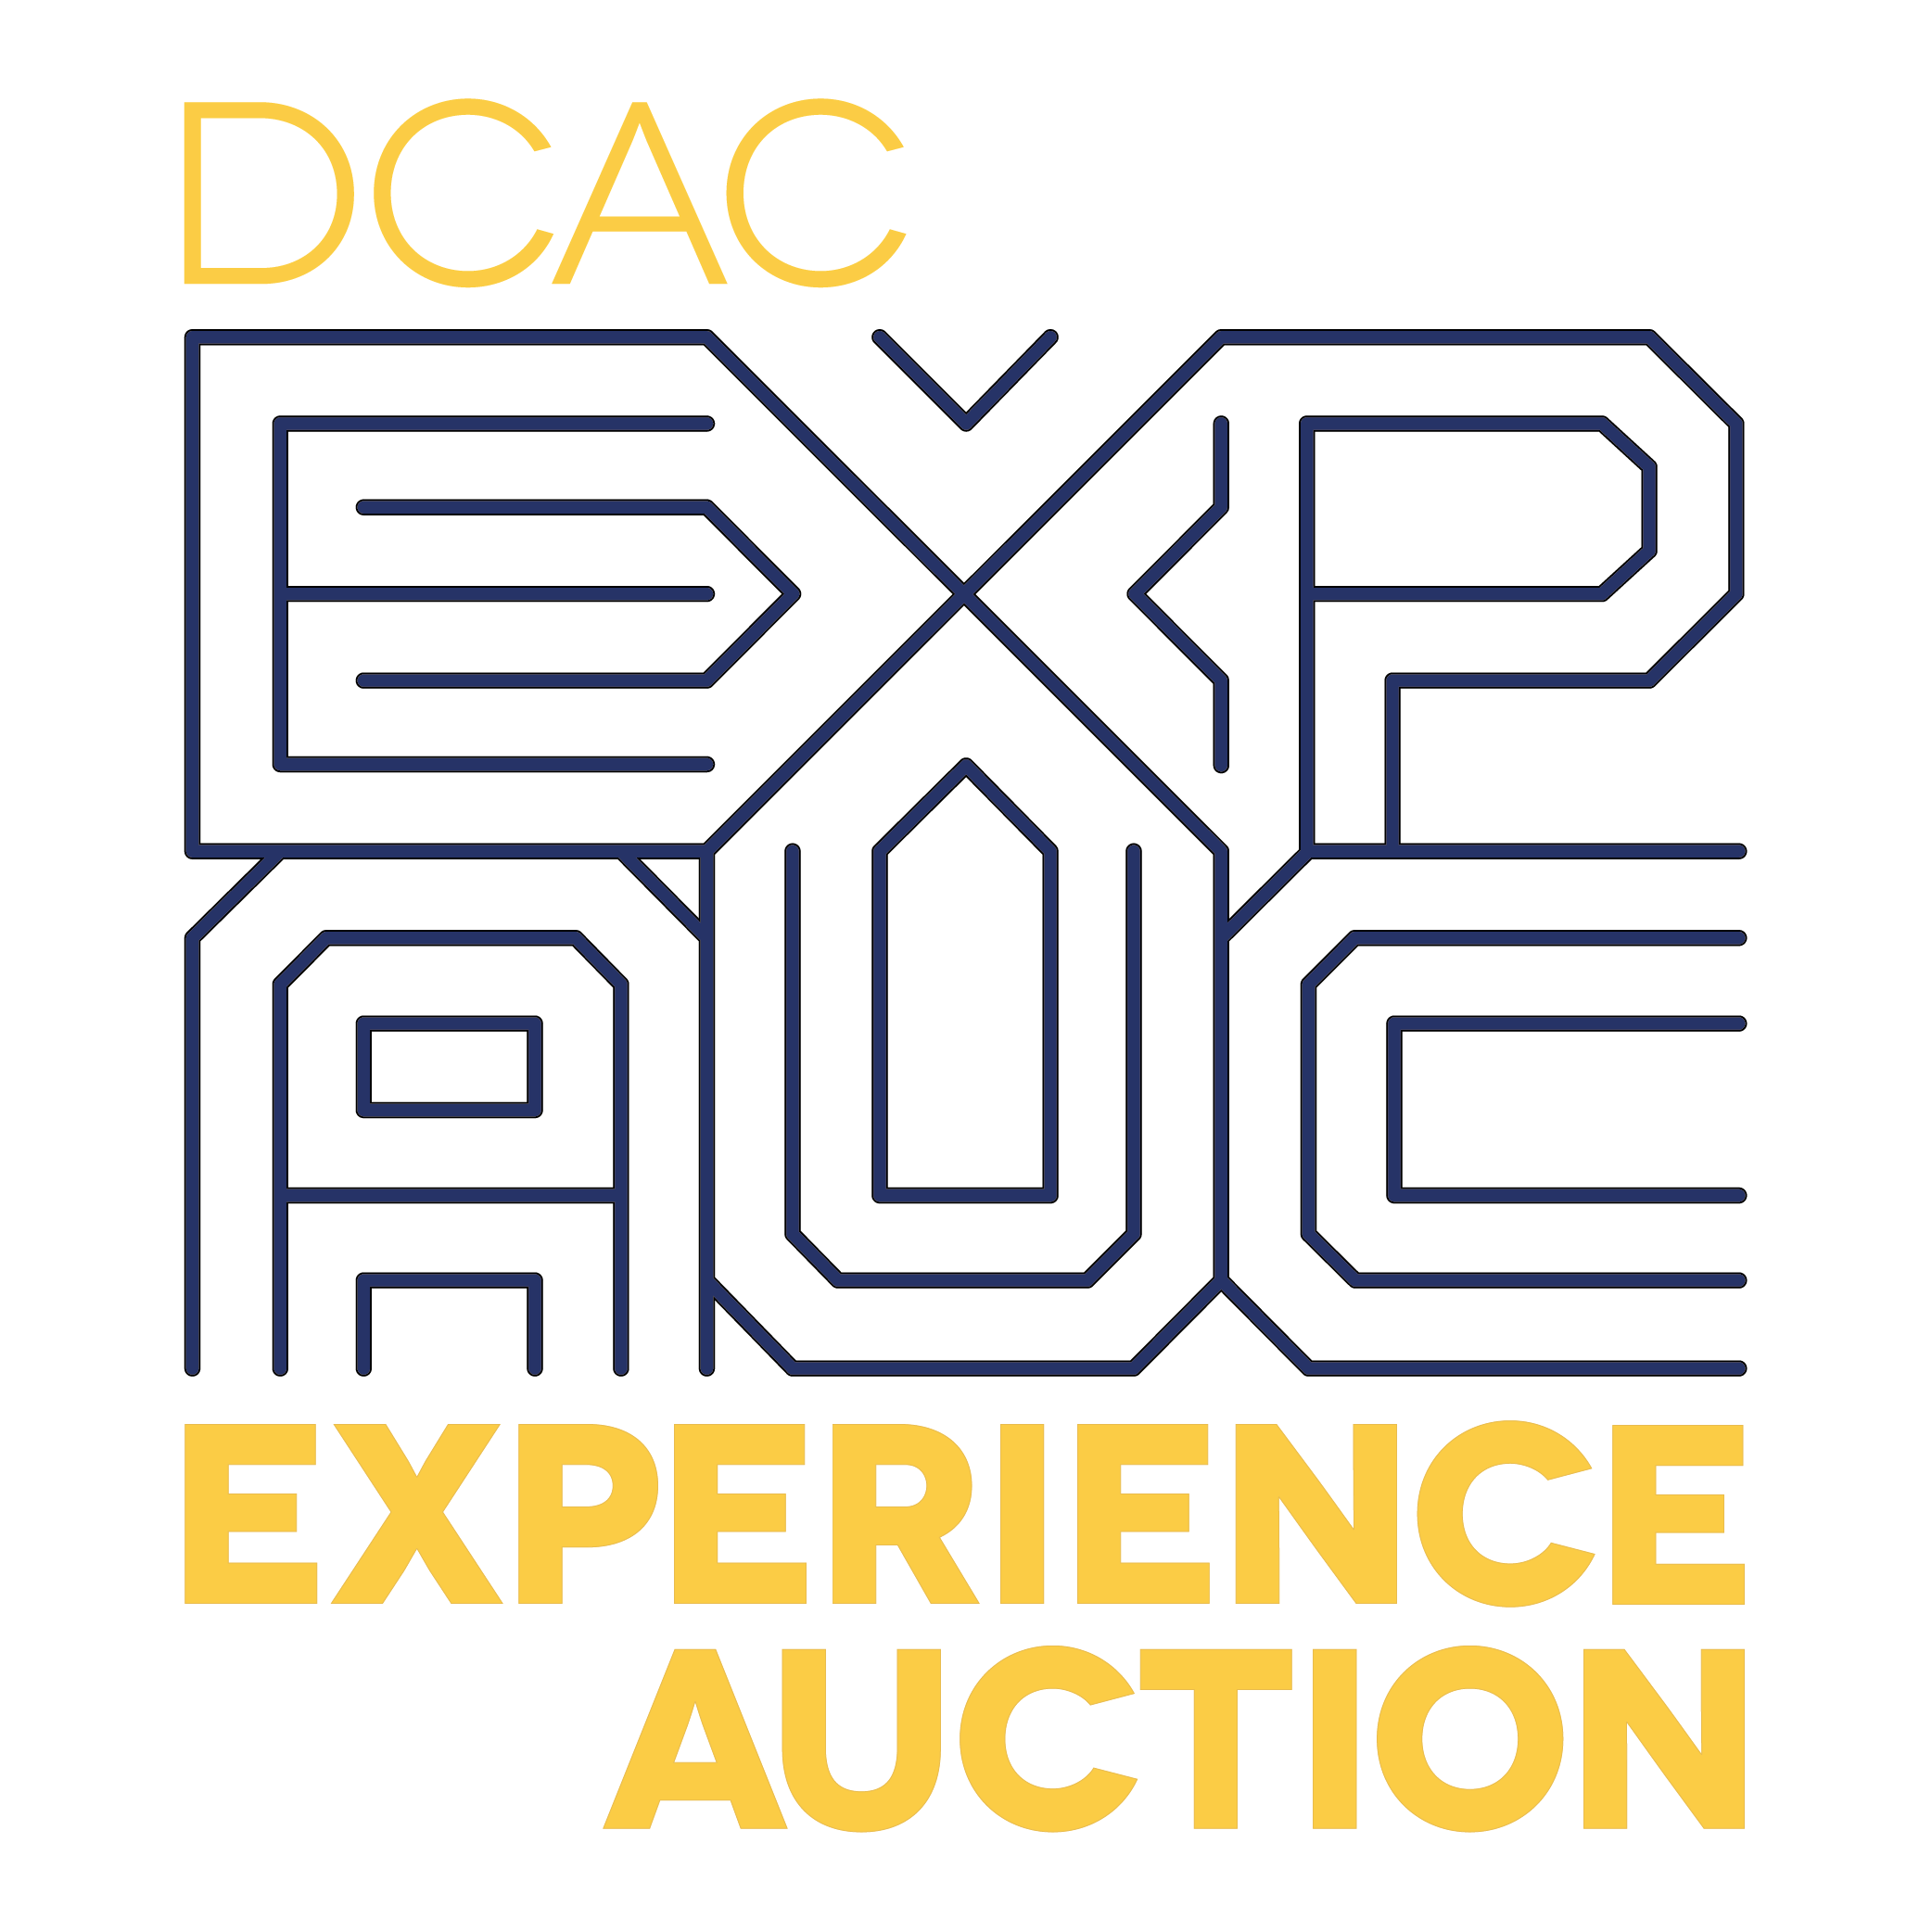 DCAC Experience Auction